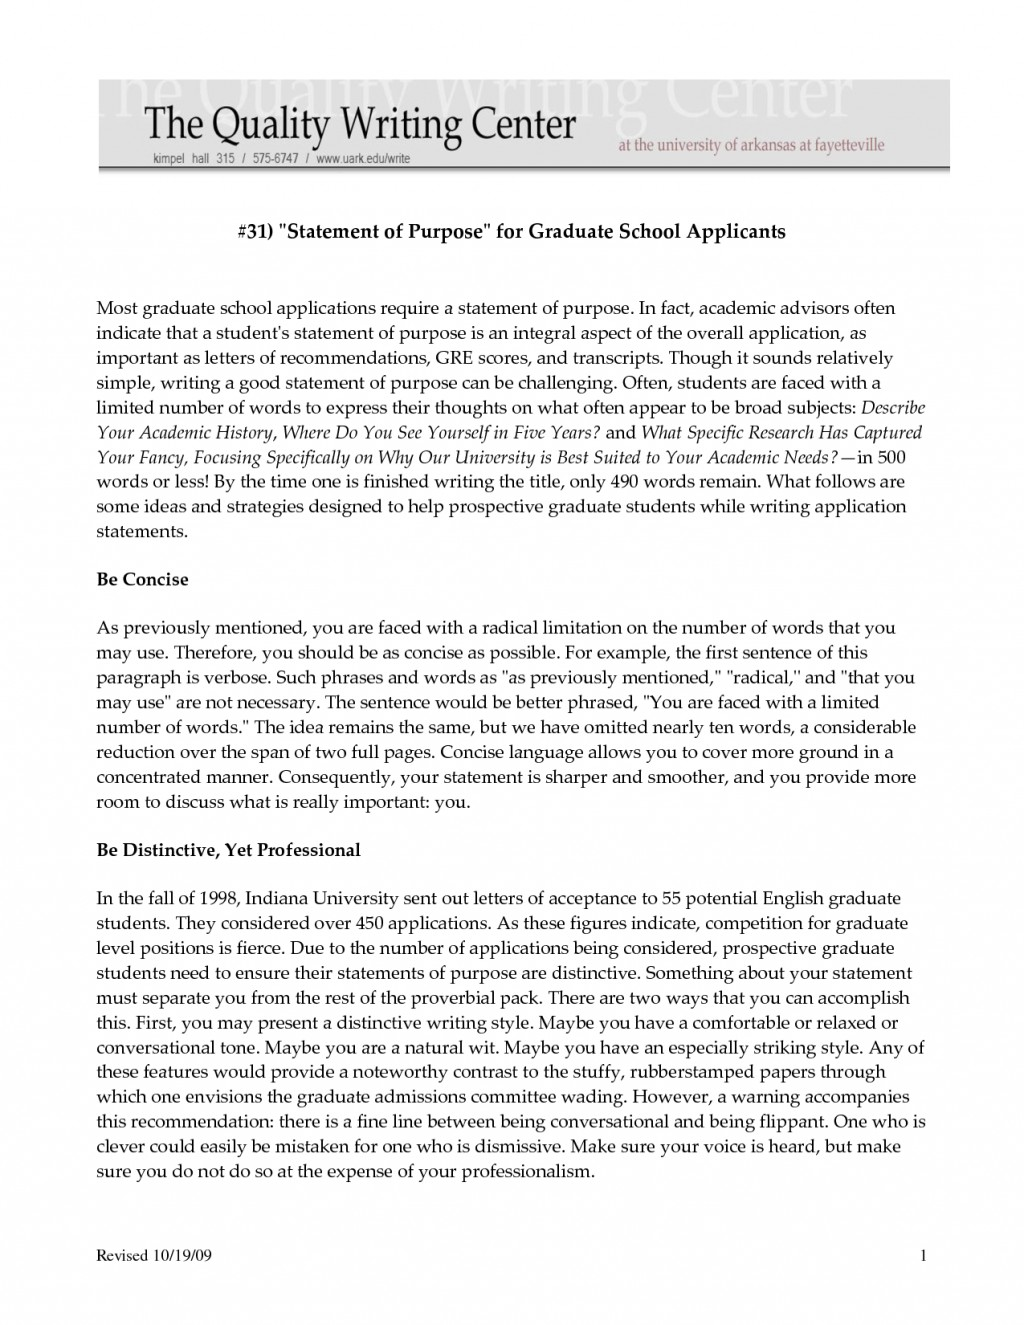 009 Personal Statement For Graduate School Sample Essays Essay Wonderful Pdf Psychology Large